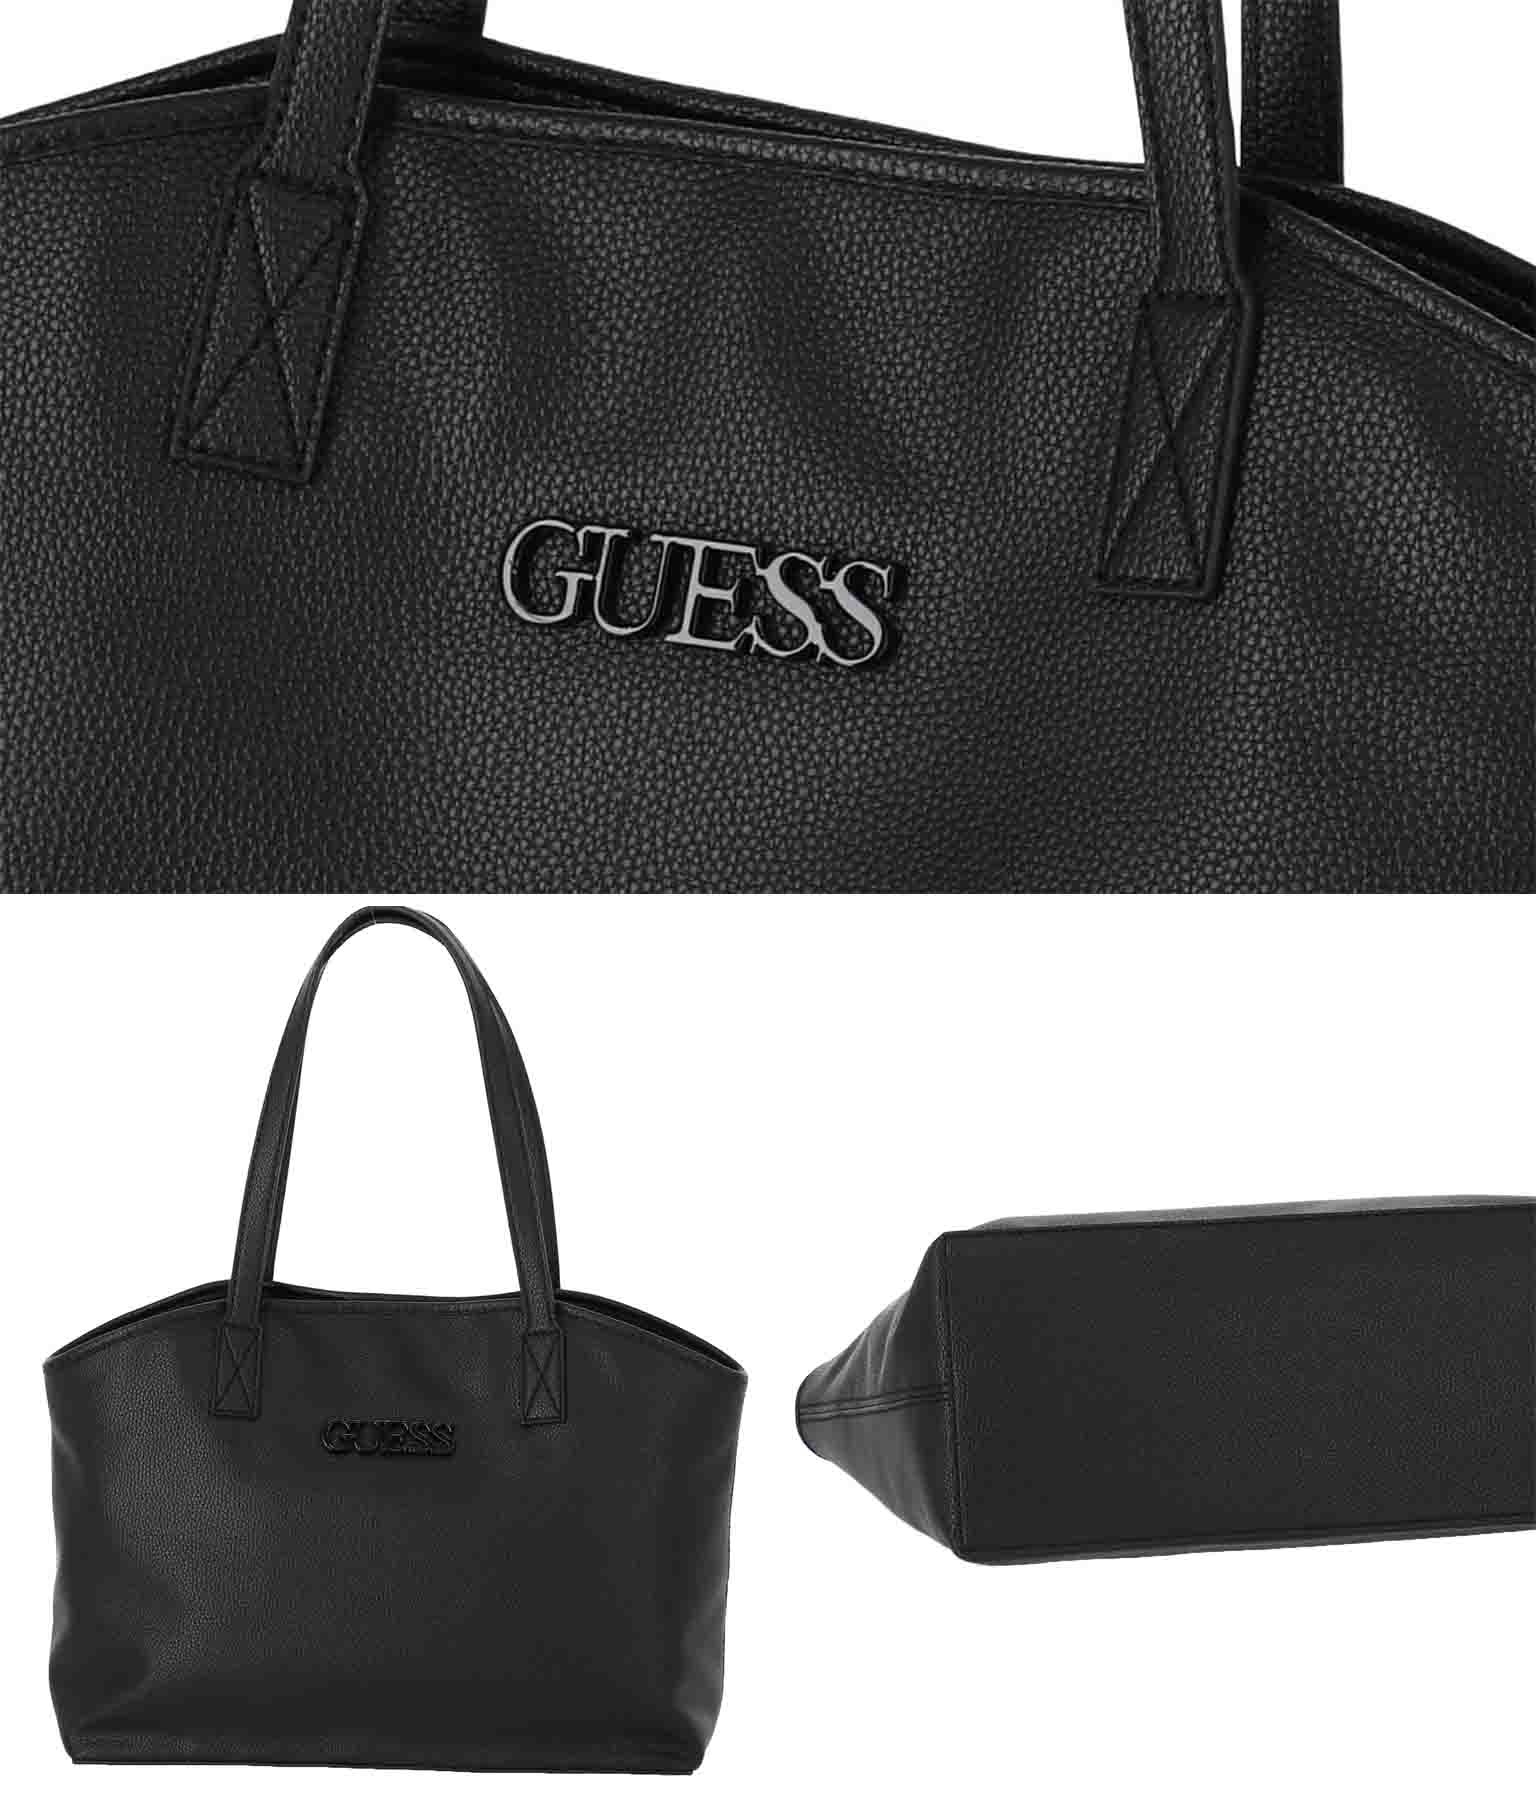 NEW AGE TOTE BAG(バッグ・鞄・小物/ハンドバッグ・トートバッグ) | GUESS